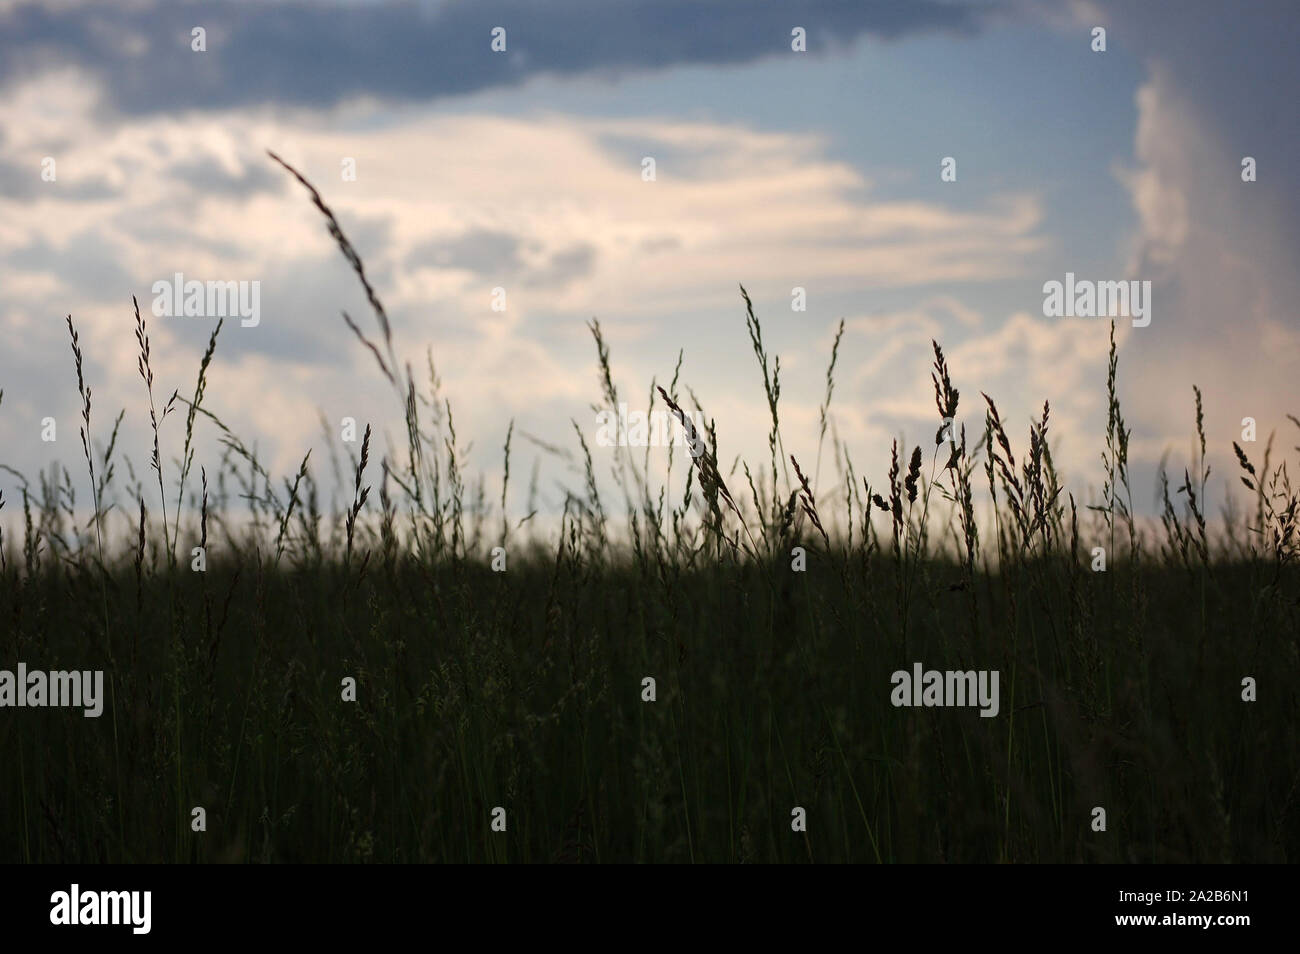 Surface level shot of Tall Fescue on a cloudy day. Stock Photo